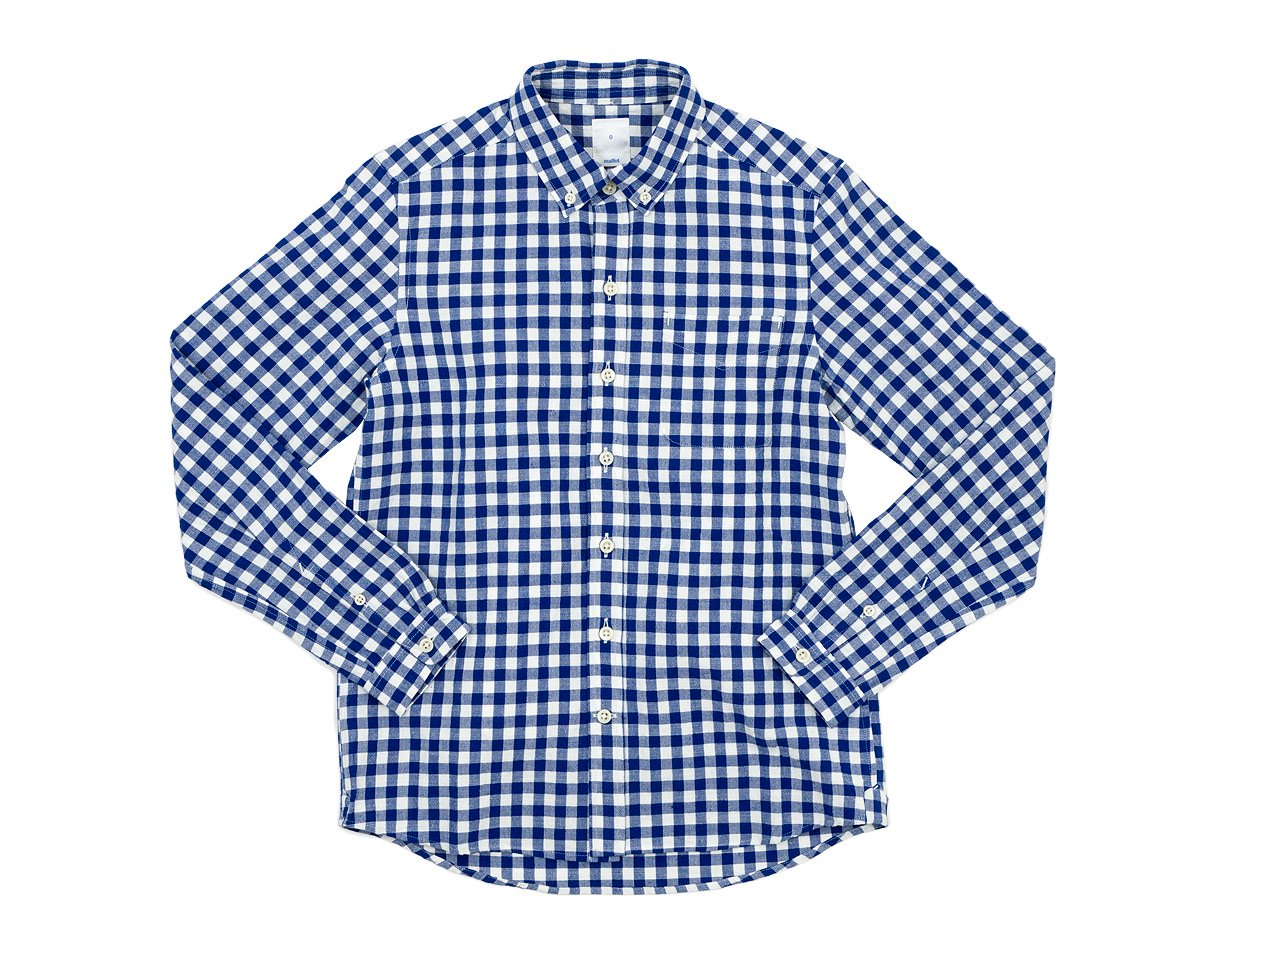 maillot sunset big gingham B.D. shirts / round work shirts